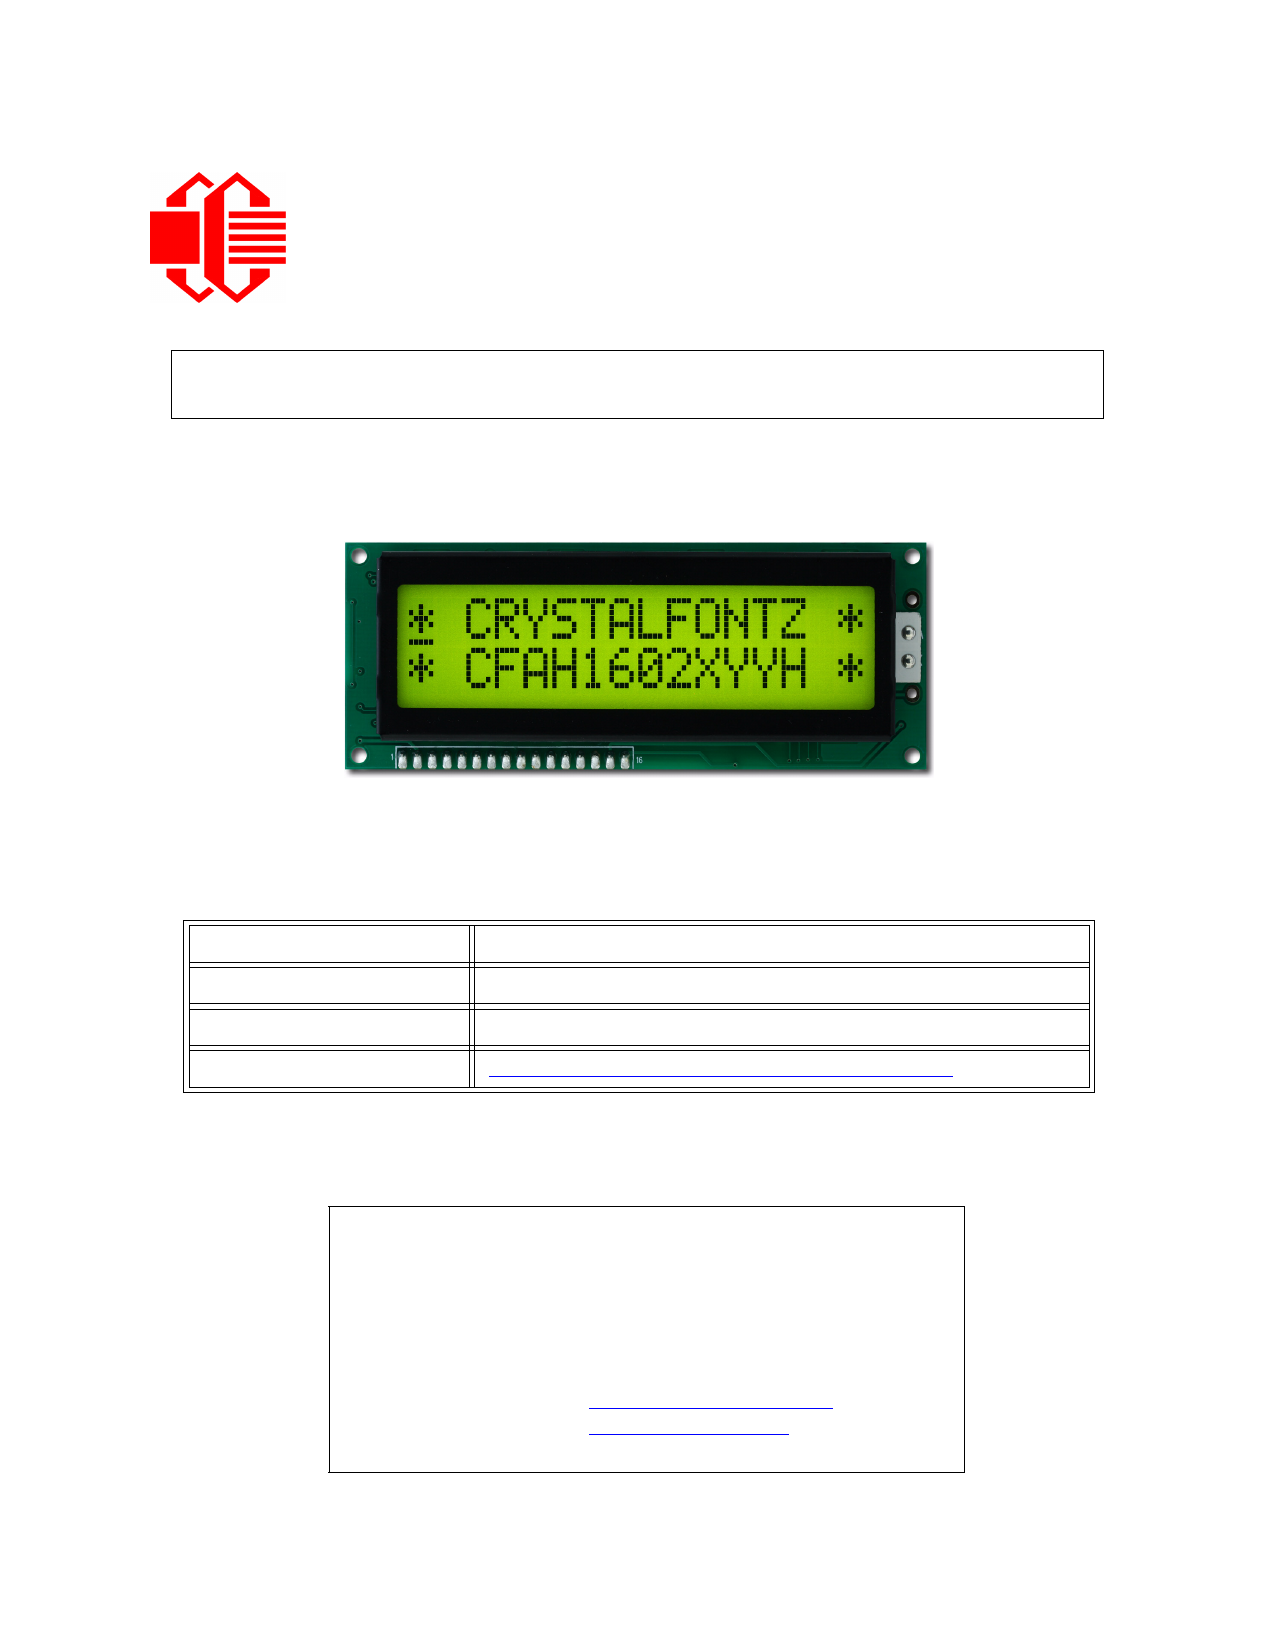 Nhd35320240mf22 Controller Board P 2674 furthermore Character Lcd Displays Part 1 furthermore Arduino Lcd Displays Part 1 together with EA LED68X51 A 95086754 together with 1602 Blue Lcd Module Hd44780 16x2 Displays Characters White Backlight. on character lcd displays part 1